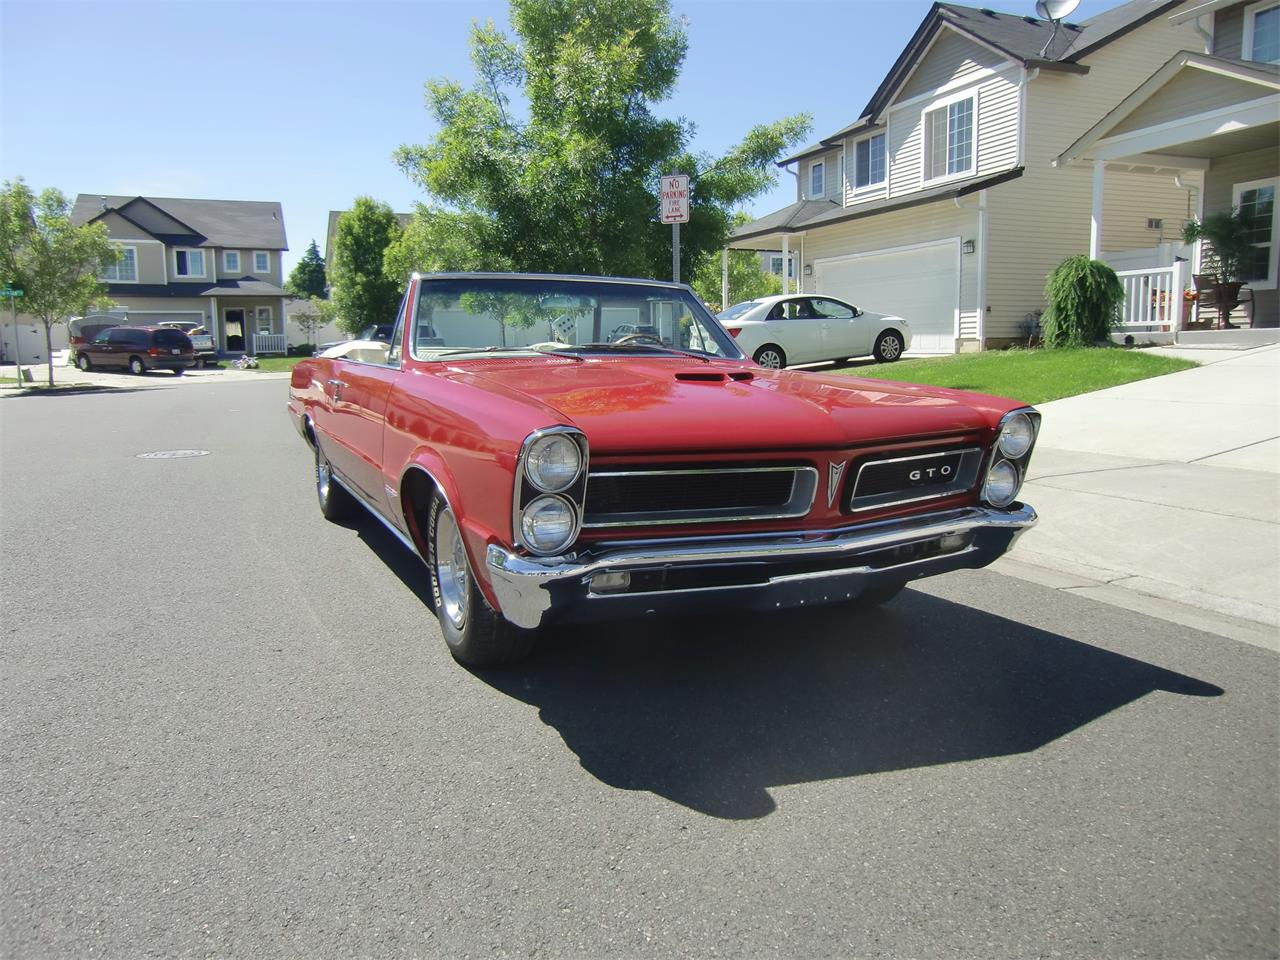 Large Picture of '65 GTO located in Portland Oregon Offered by a Private Seller - OQVM